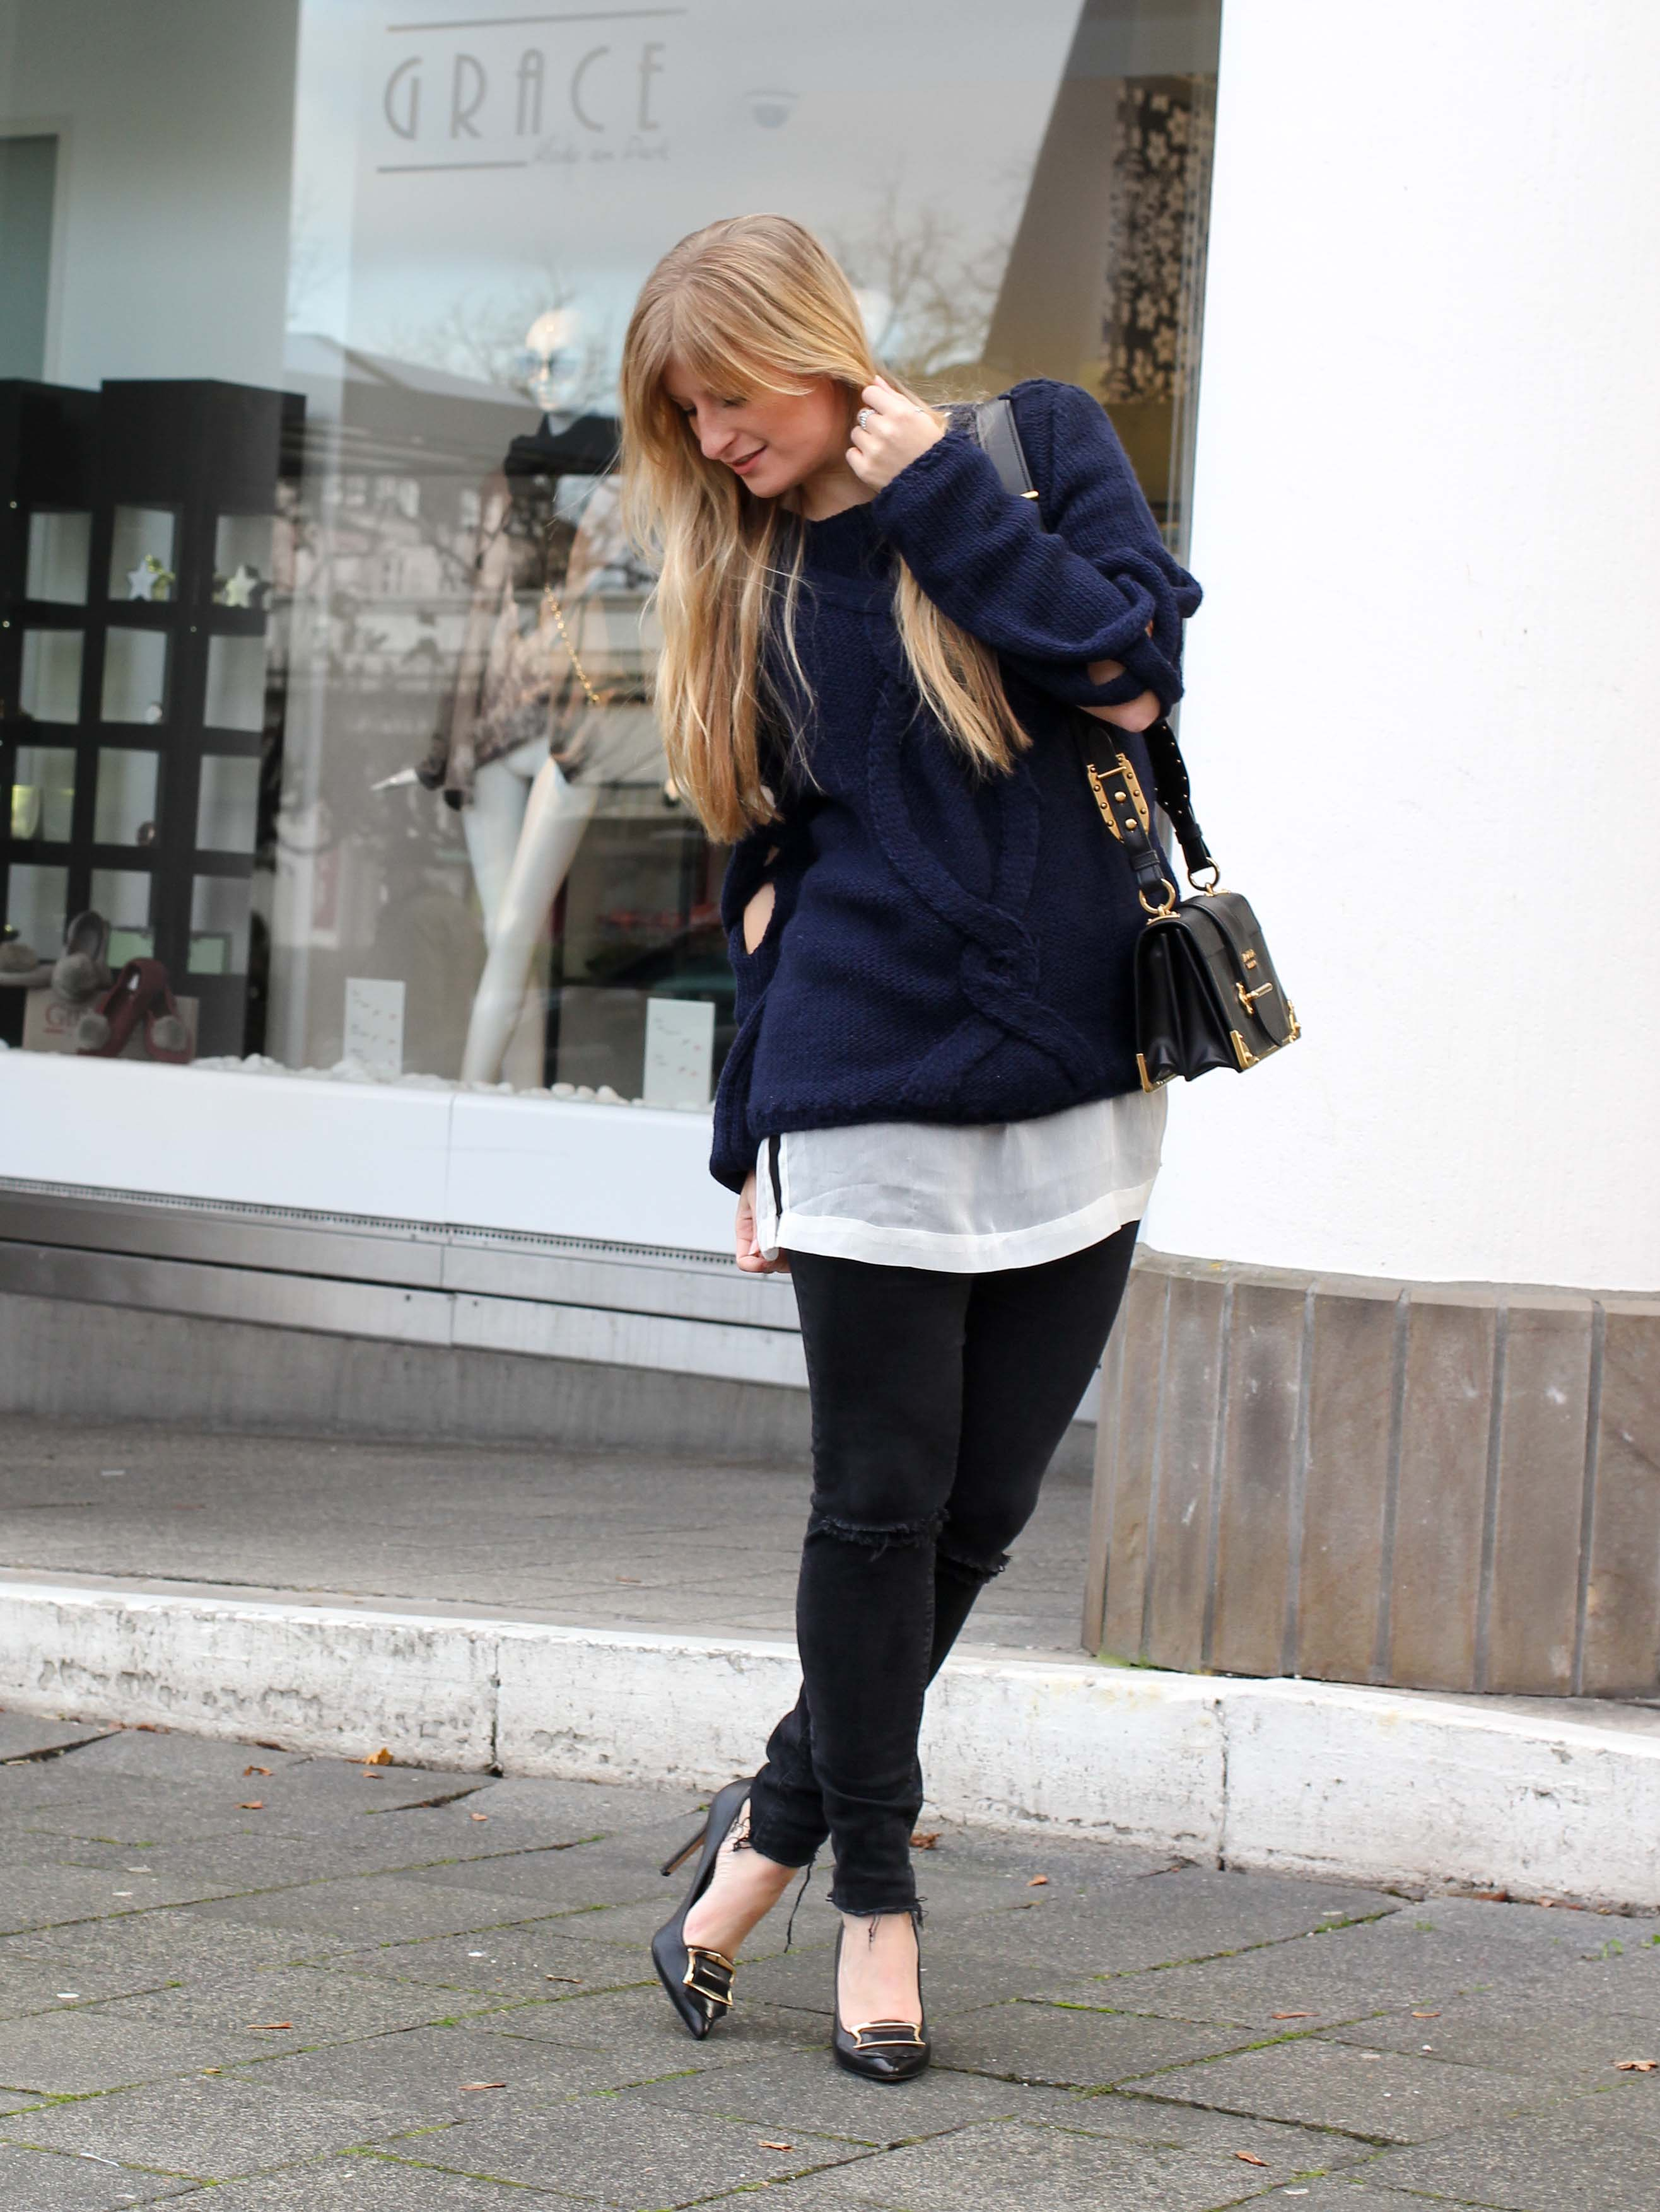 Streetstyle Wollpullover mit Cut-Outs Zopfmuster Asos Prada Cahier Bag Modeblogger 5